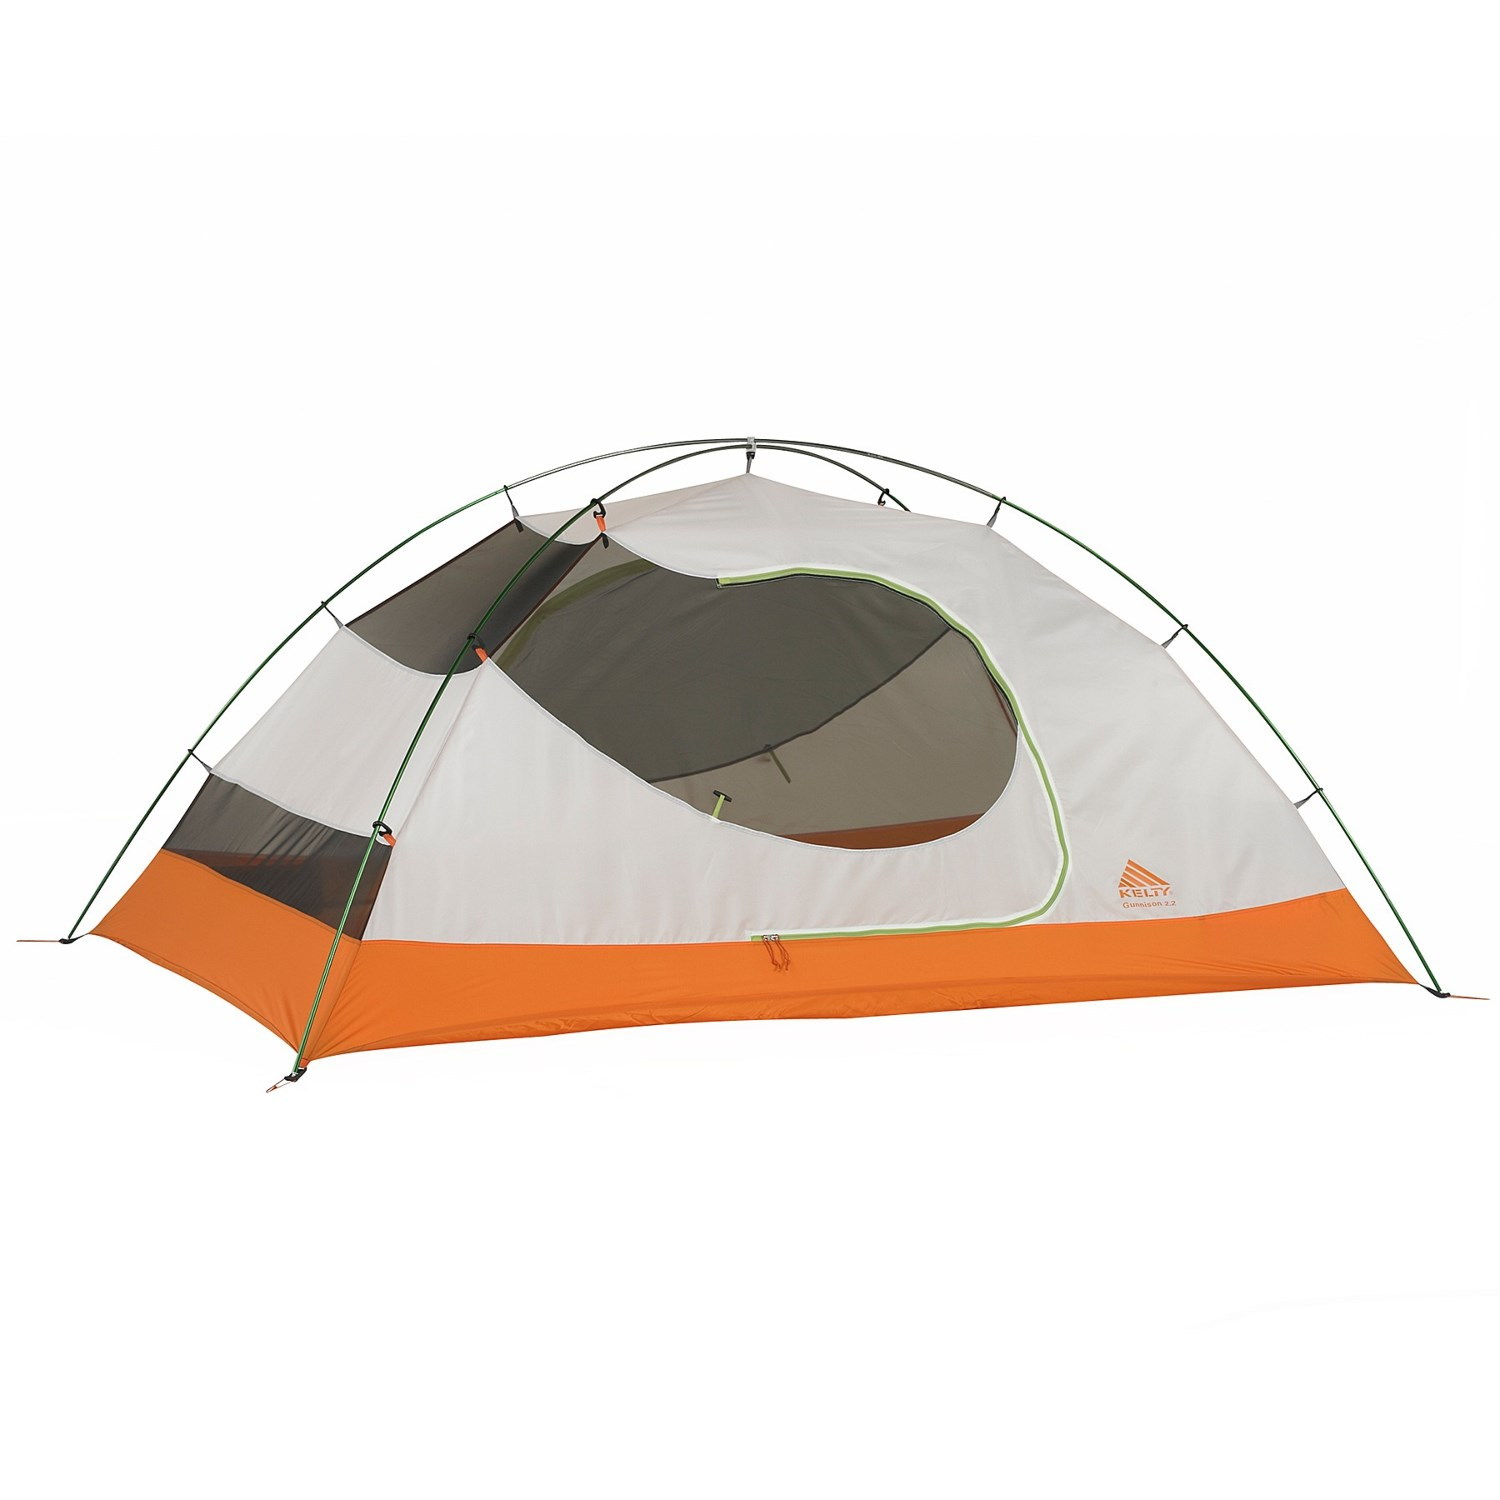 Kelty Gunnison 2.2 Tent - 2-Person 3-Season in See Photo ...  sc 1 st  Sierra Trading Post & Kelty Gunnison 2.2 Tent - 2-Person 3-Season - Save 31%